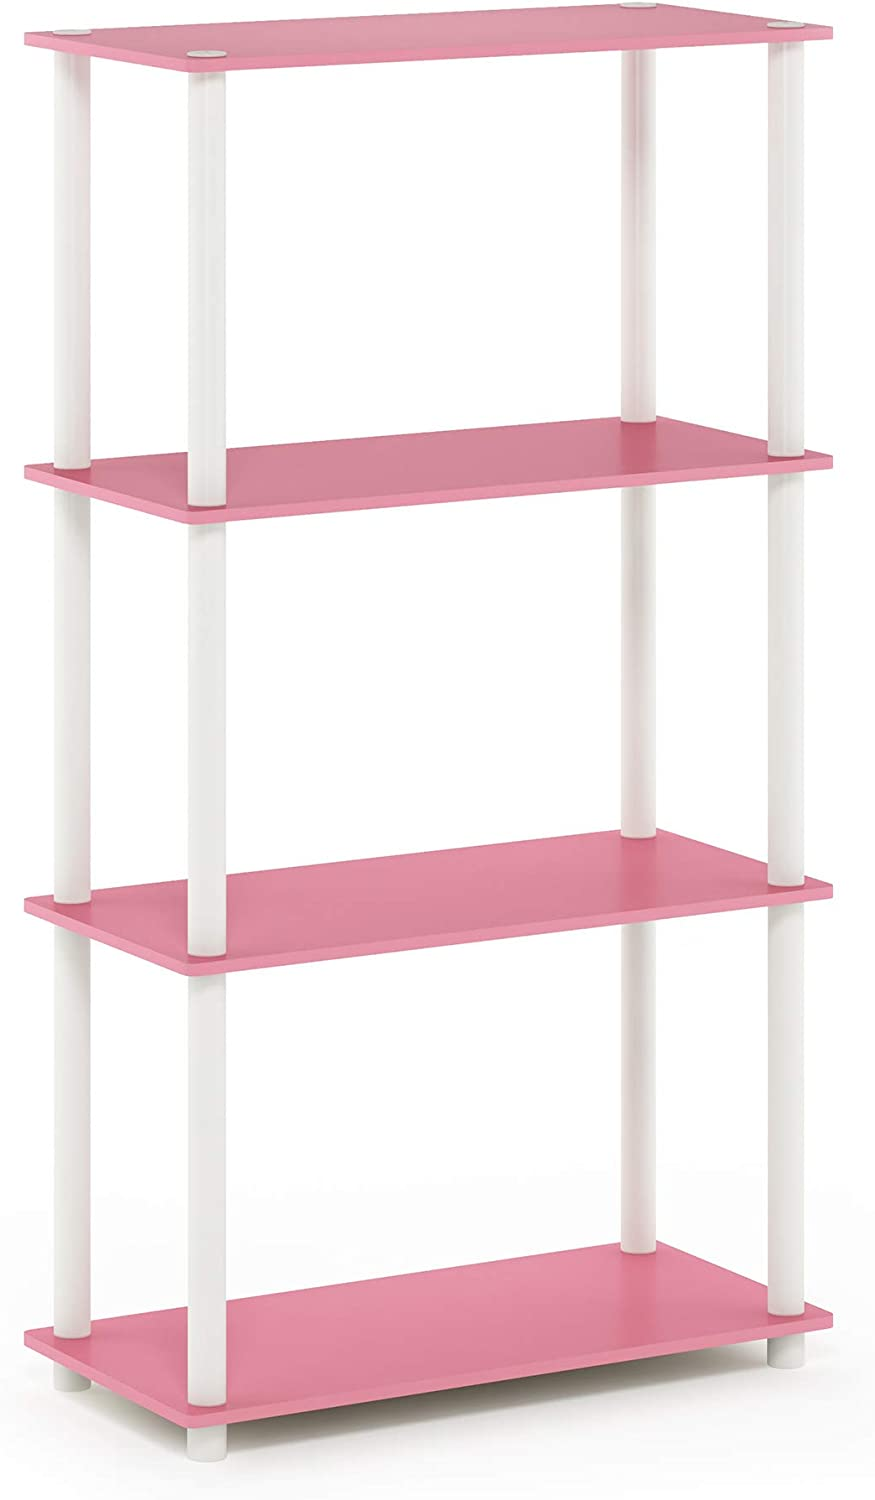 Furinno Turn-N-Tube 4-Tier Multipurpose Shelf Display Rack, Single, Pink/White